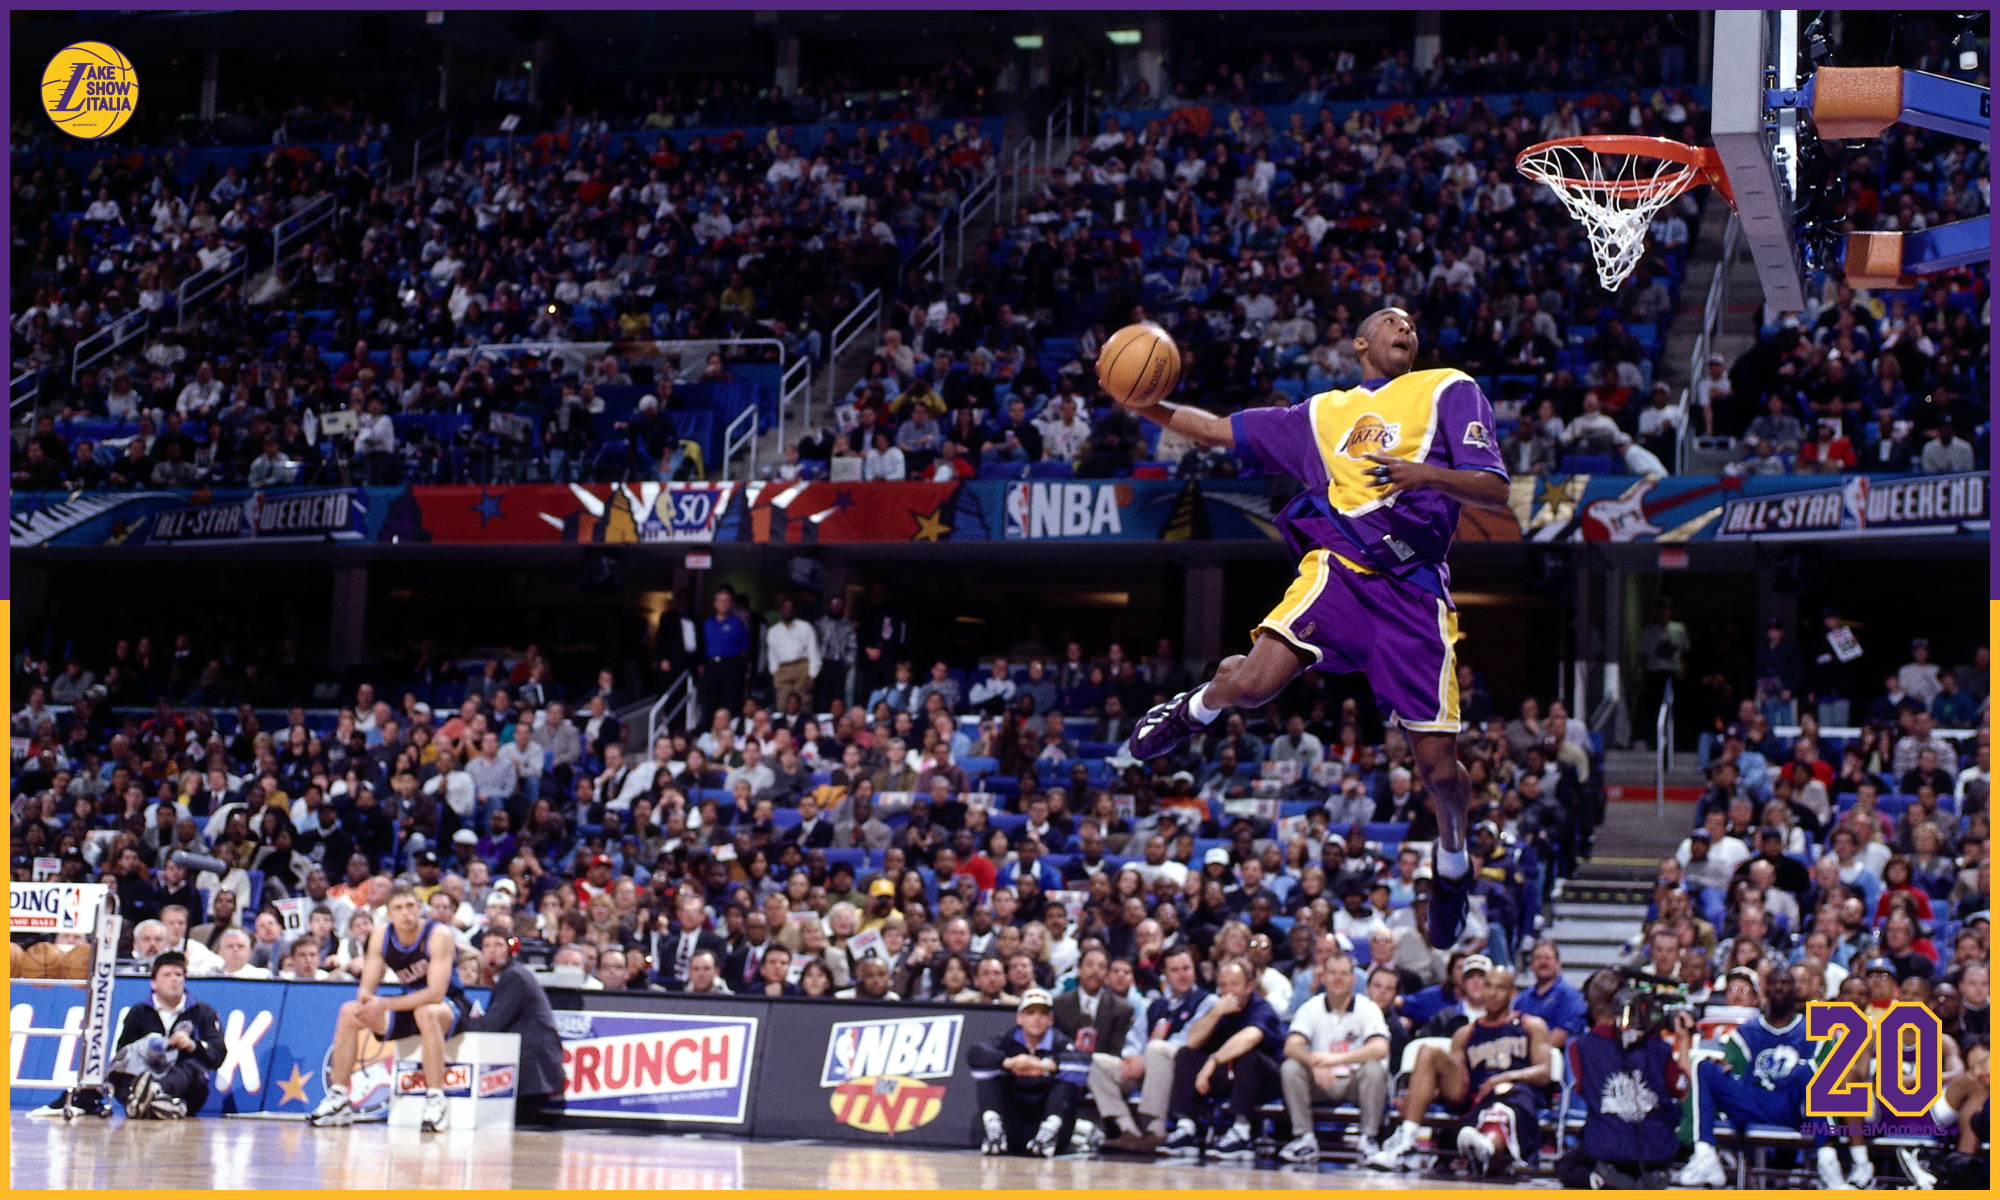 Kobe Bryant goes up for one of his slam dunks that won first place in the NBA All-Star Slam Dunk Contest at Gund Arena on February 8, 1997 in Cleveland, Ohio